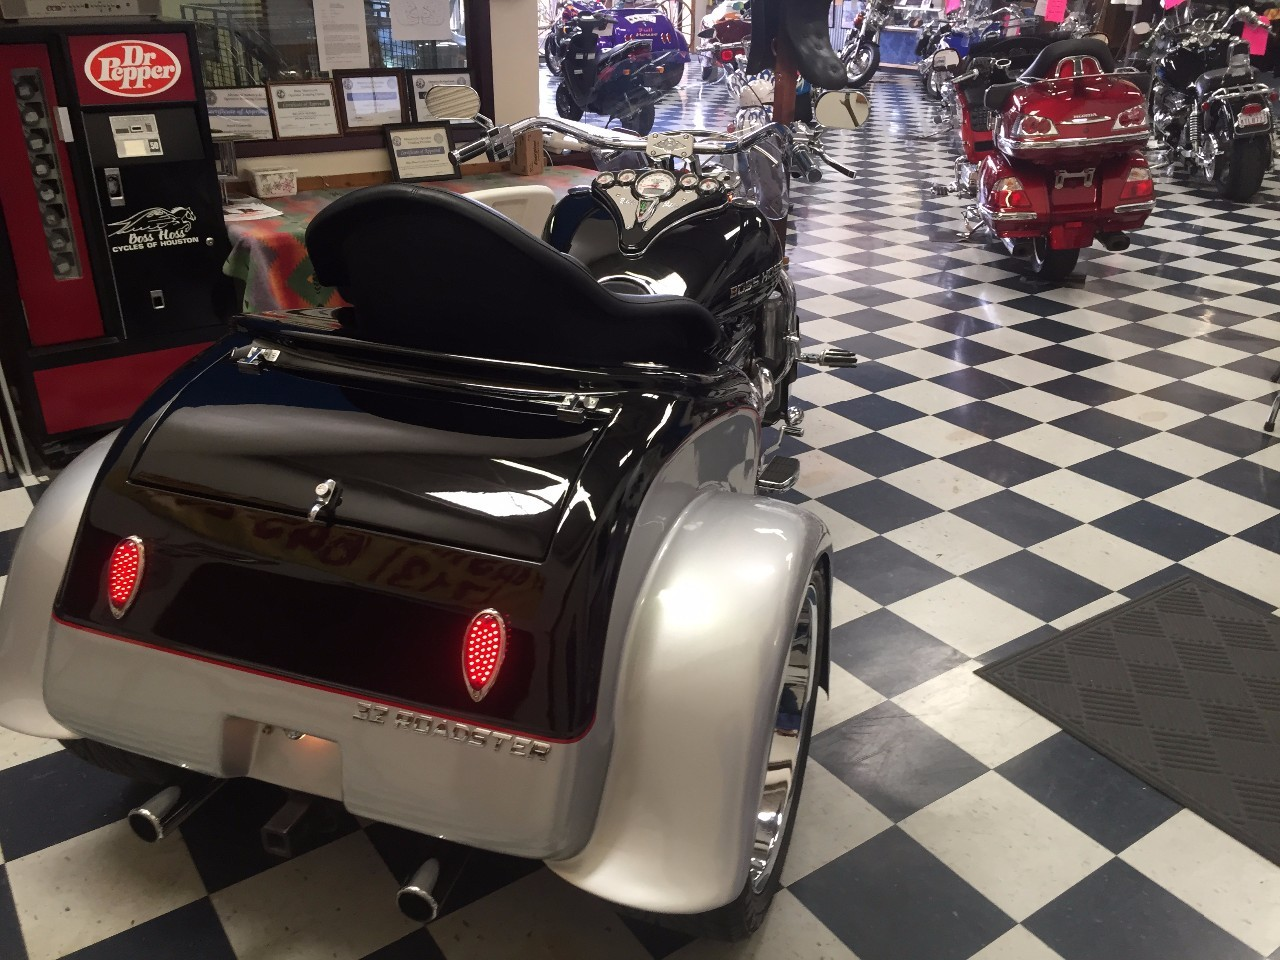 See more photos for this Boss Hoss BHC-9 32 Roadster, 2008 motorcycle listing